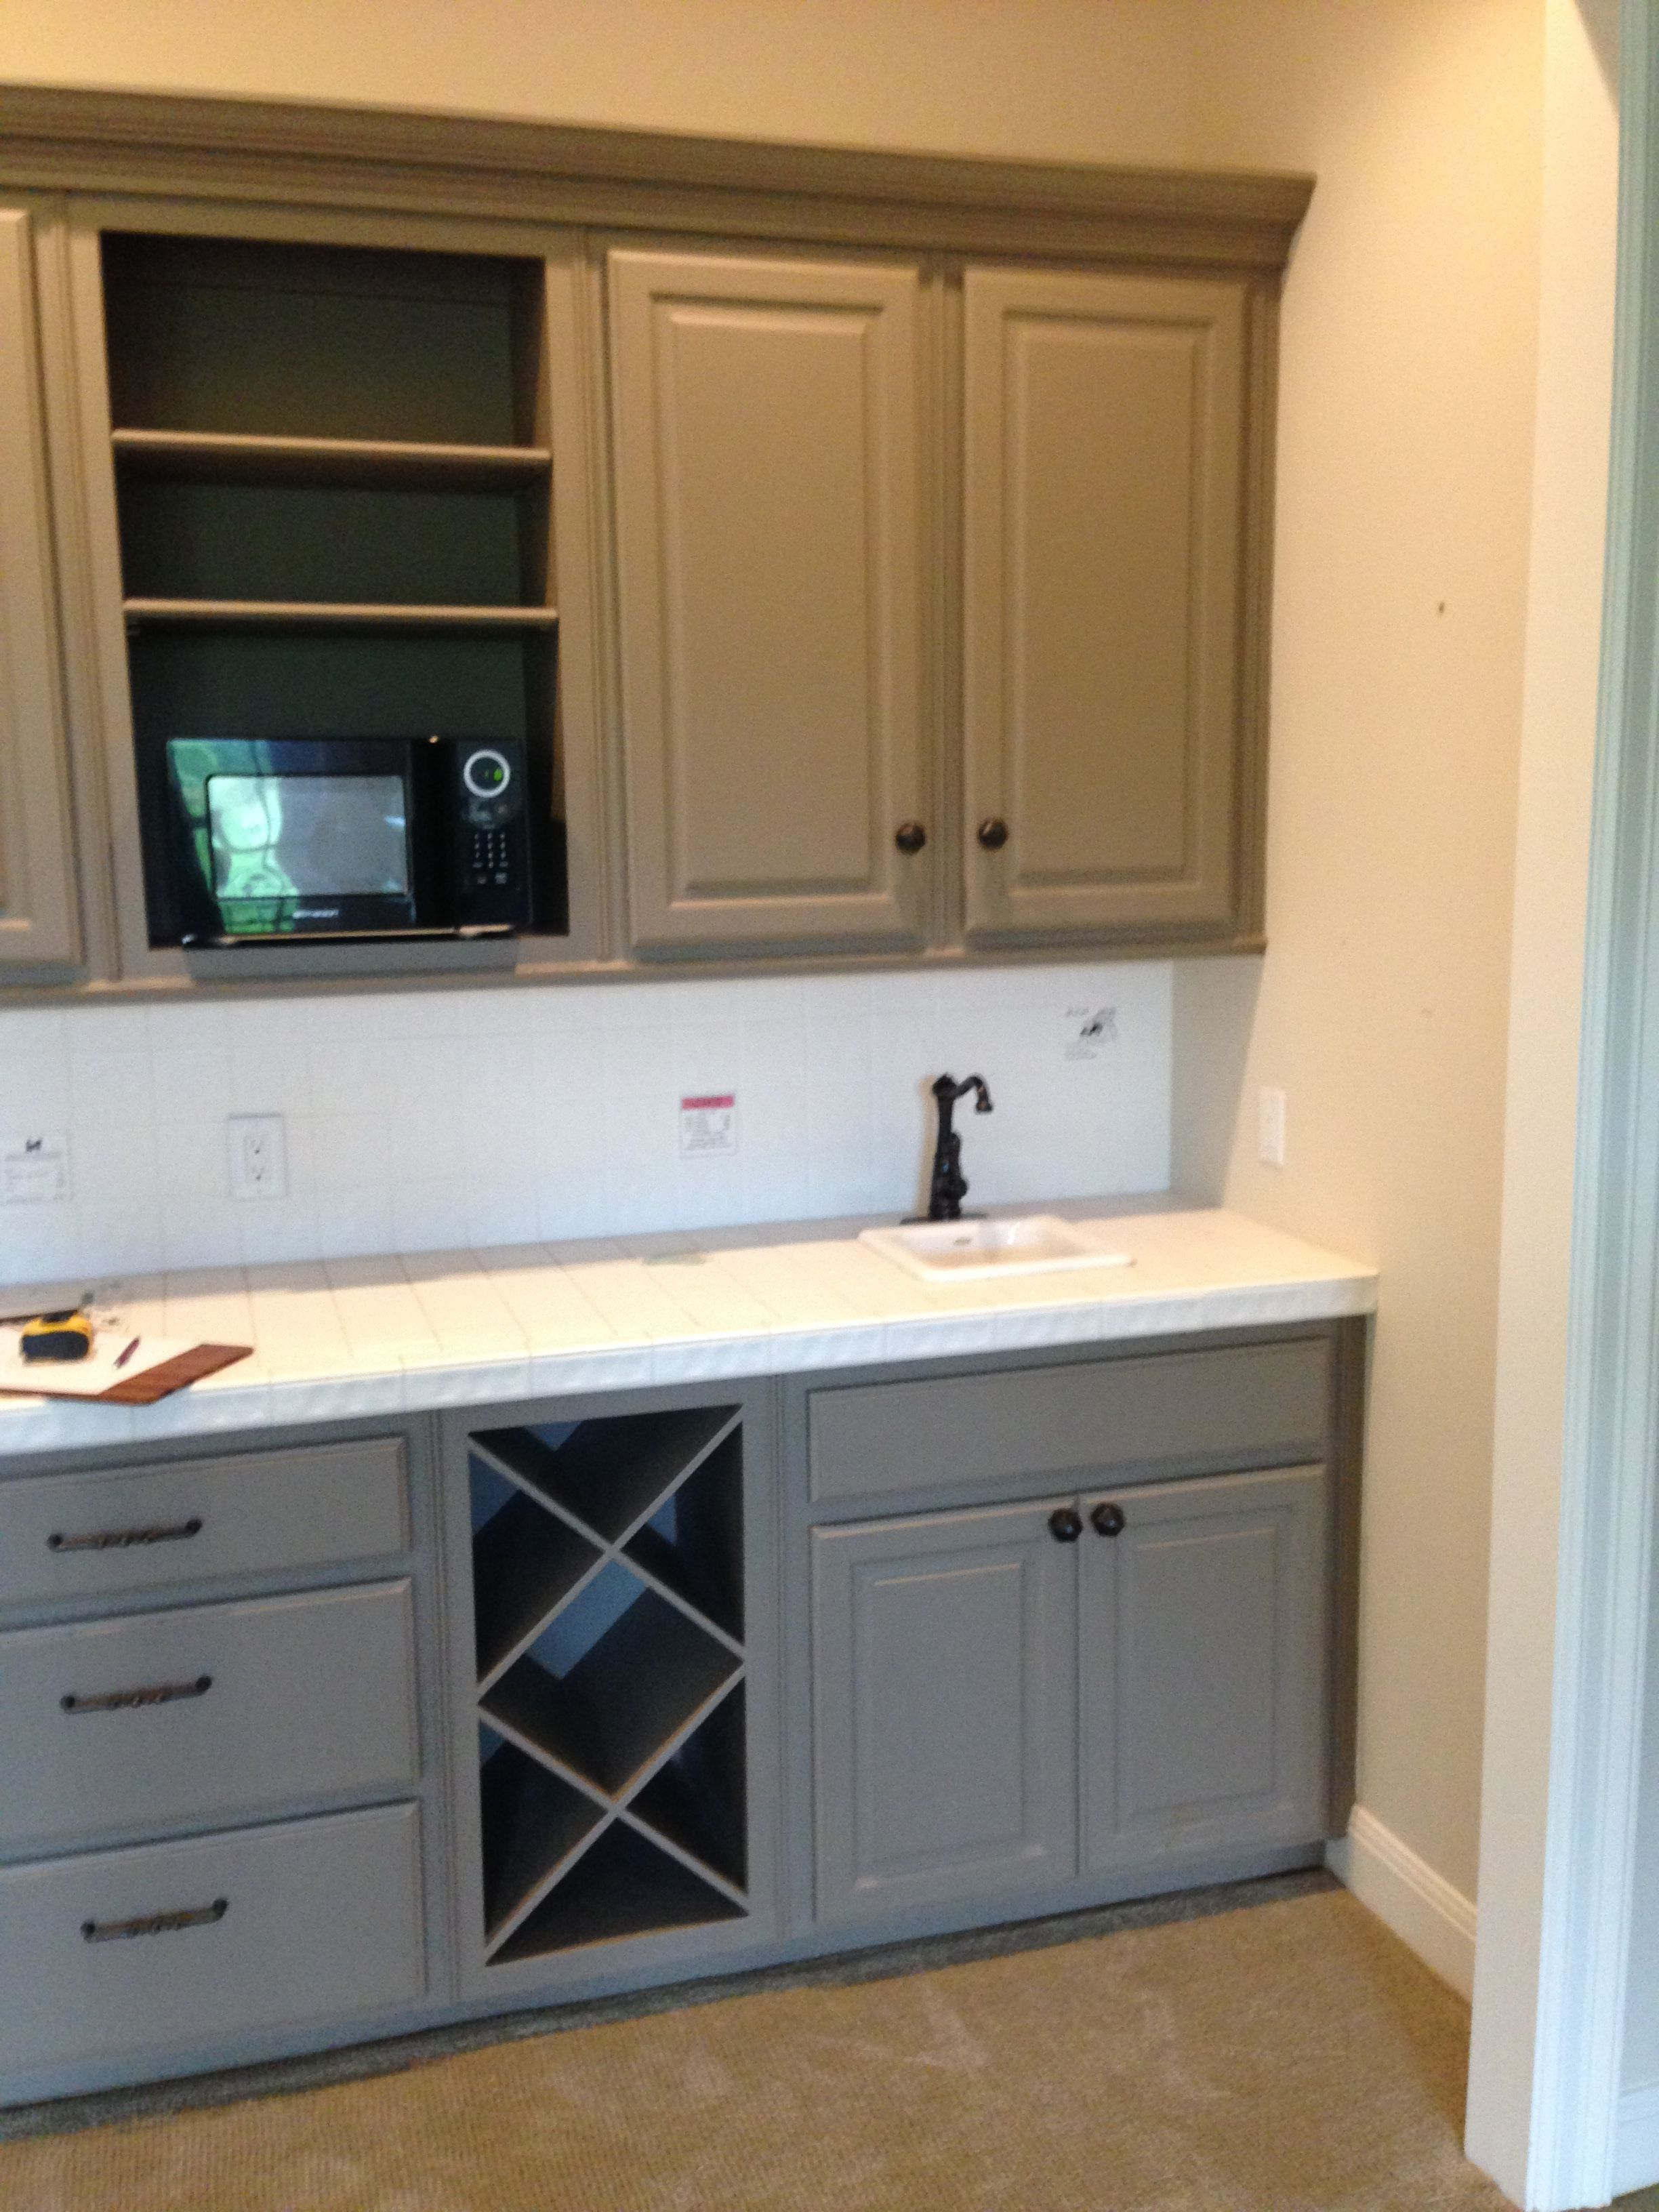 Pin By Erica Keast Heroy On Dunning Lane Pool House Home Decor Kitchen Cabinets